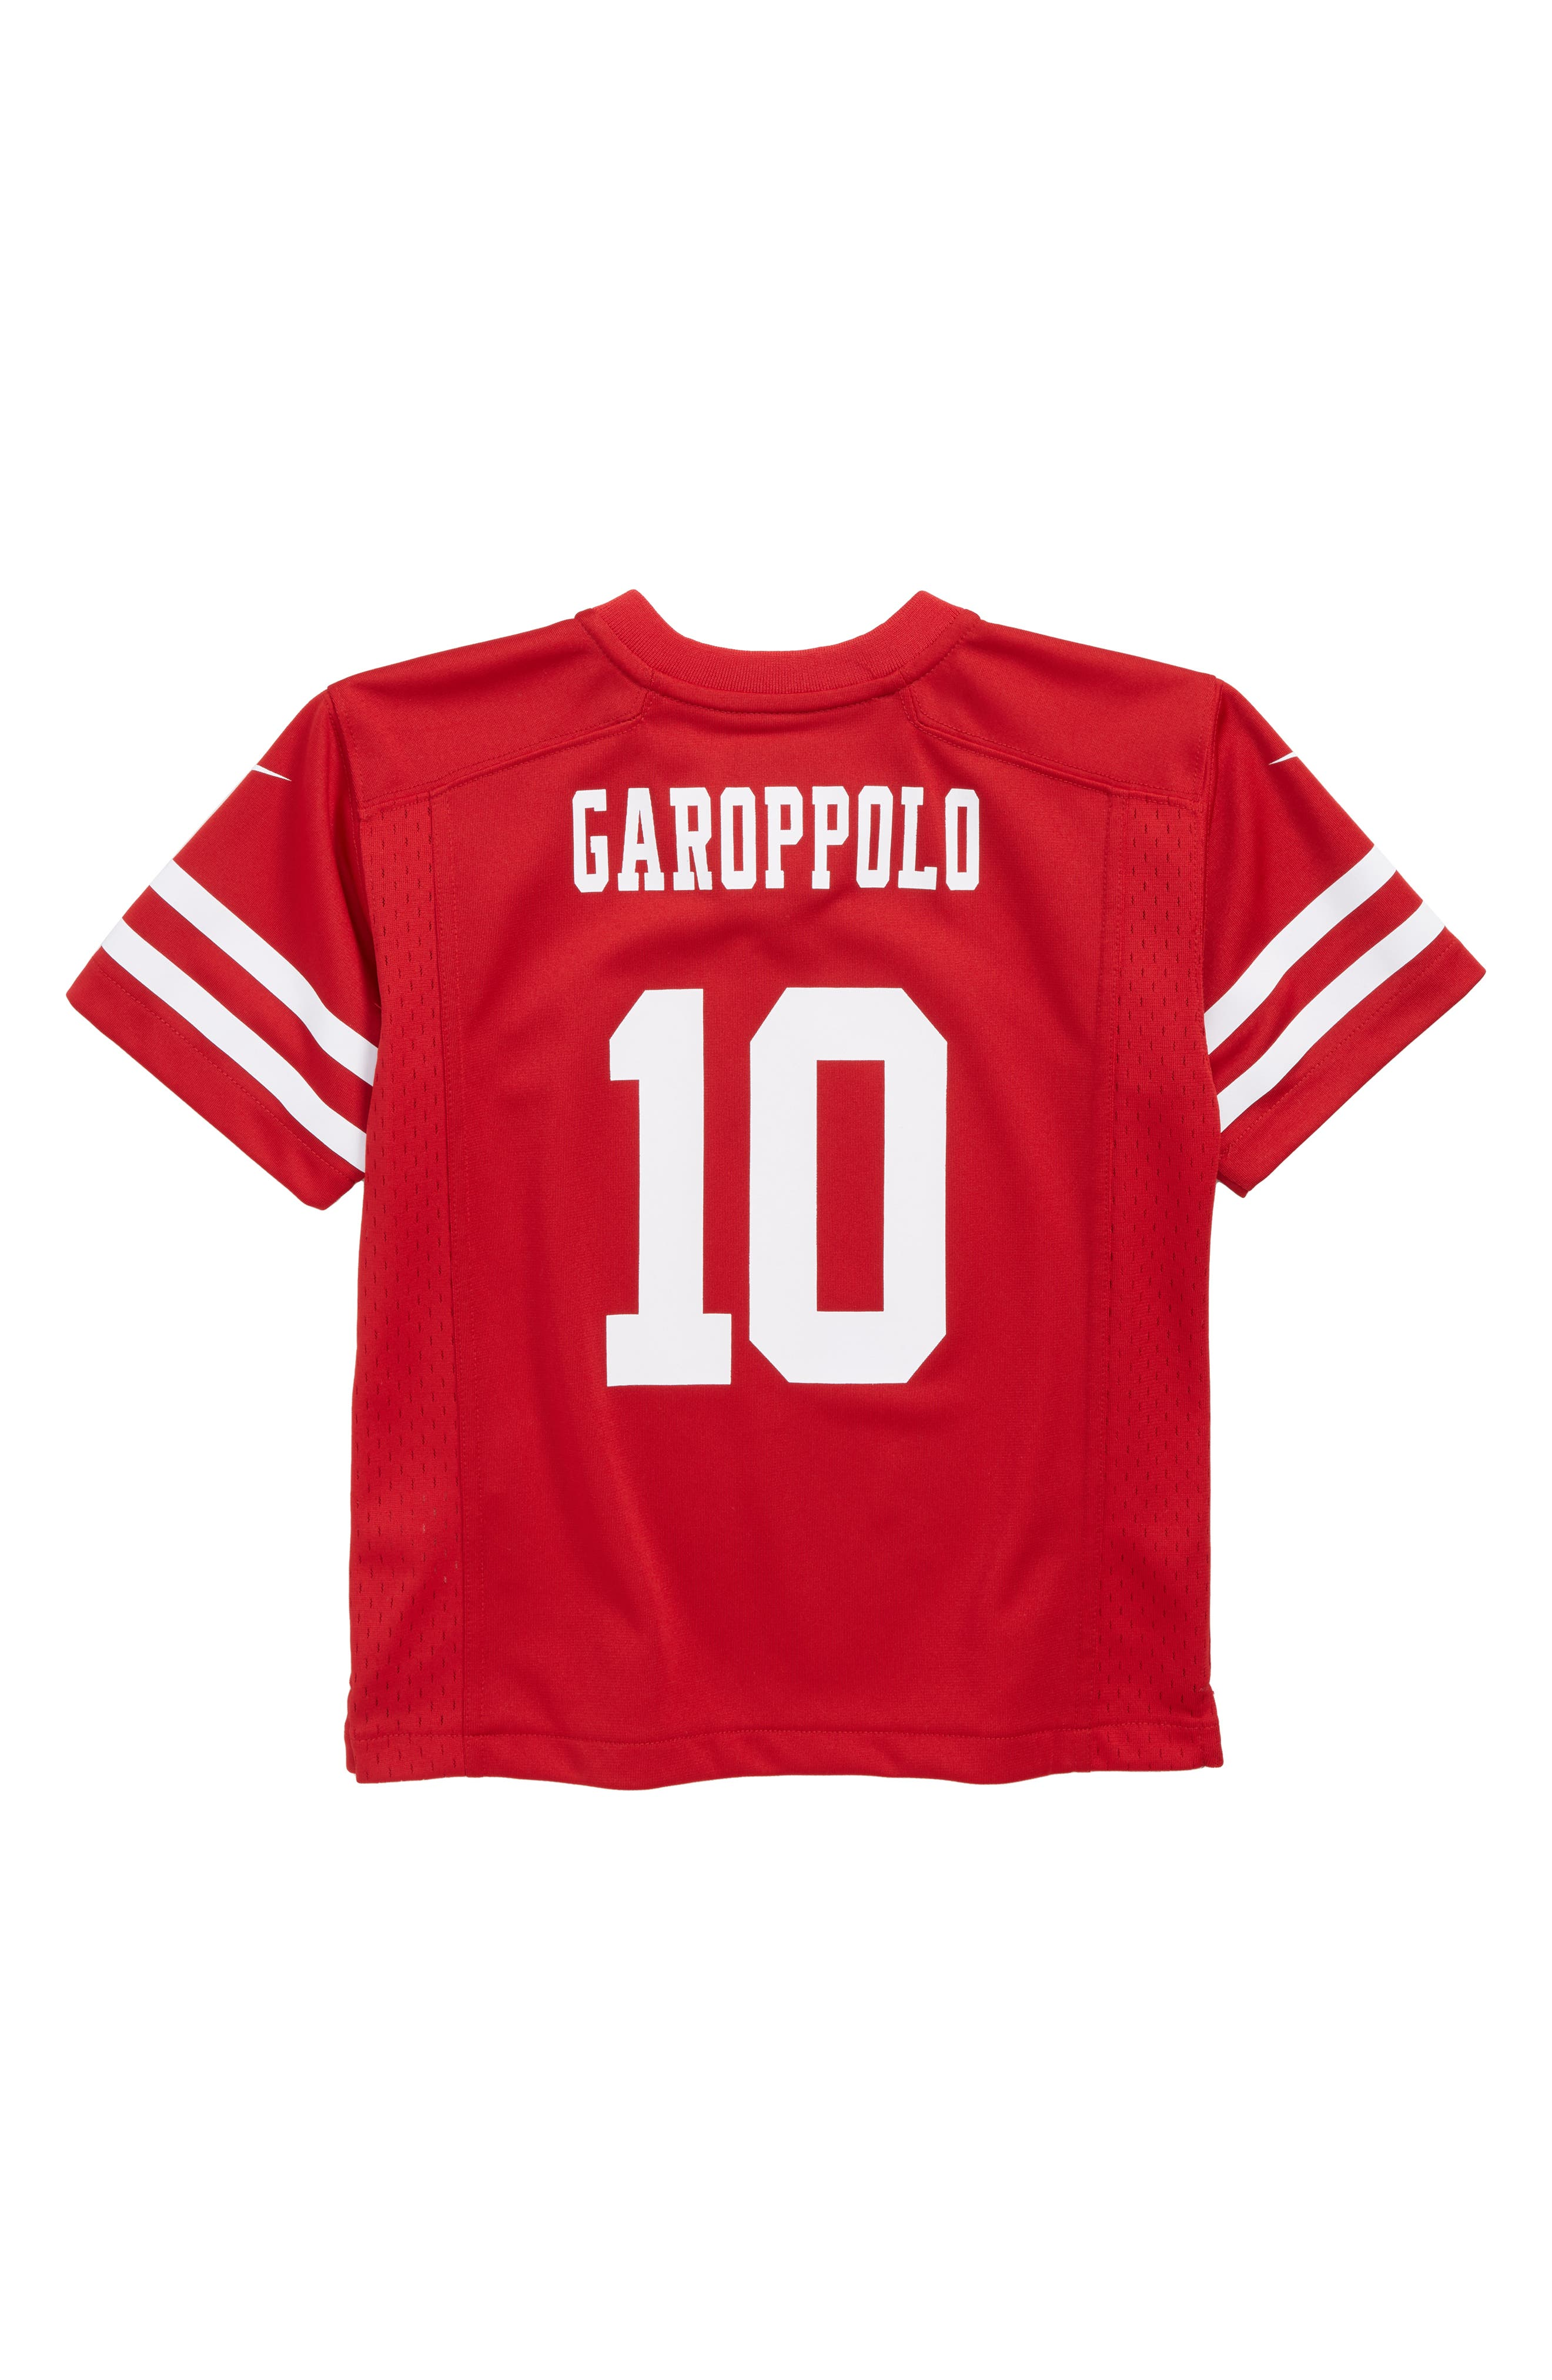 NFL San Francisco 49ers Jimmy Garoppolo Jersey,                             Alternate thumbnail 2, color,                             RED